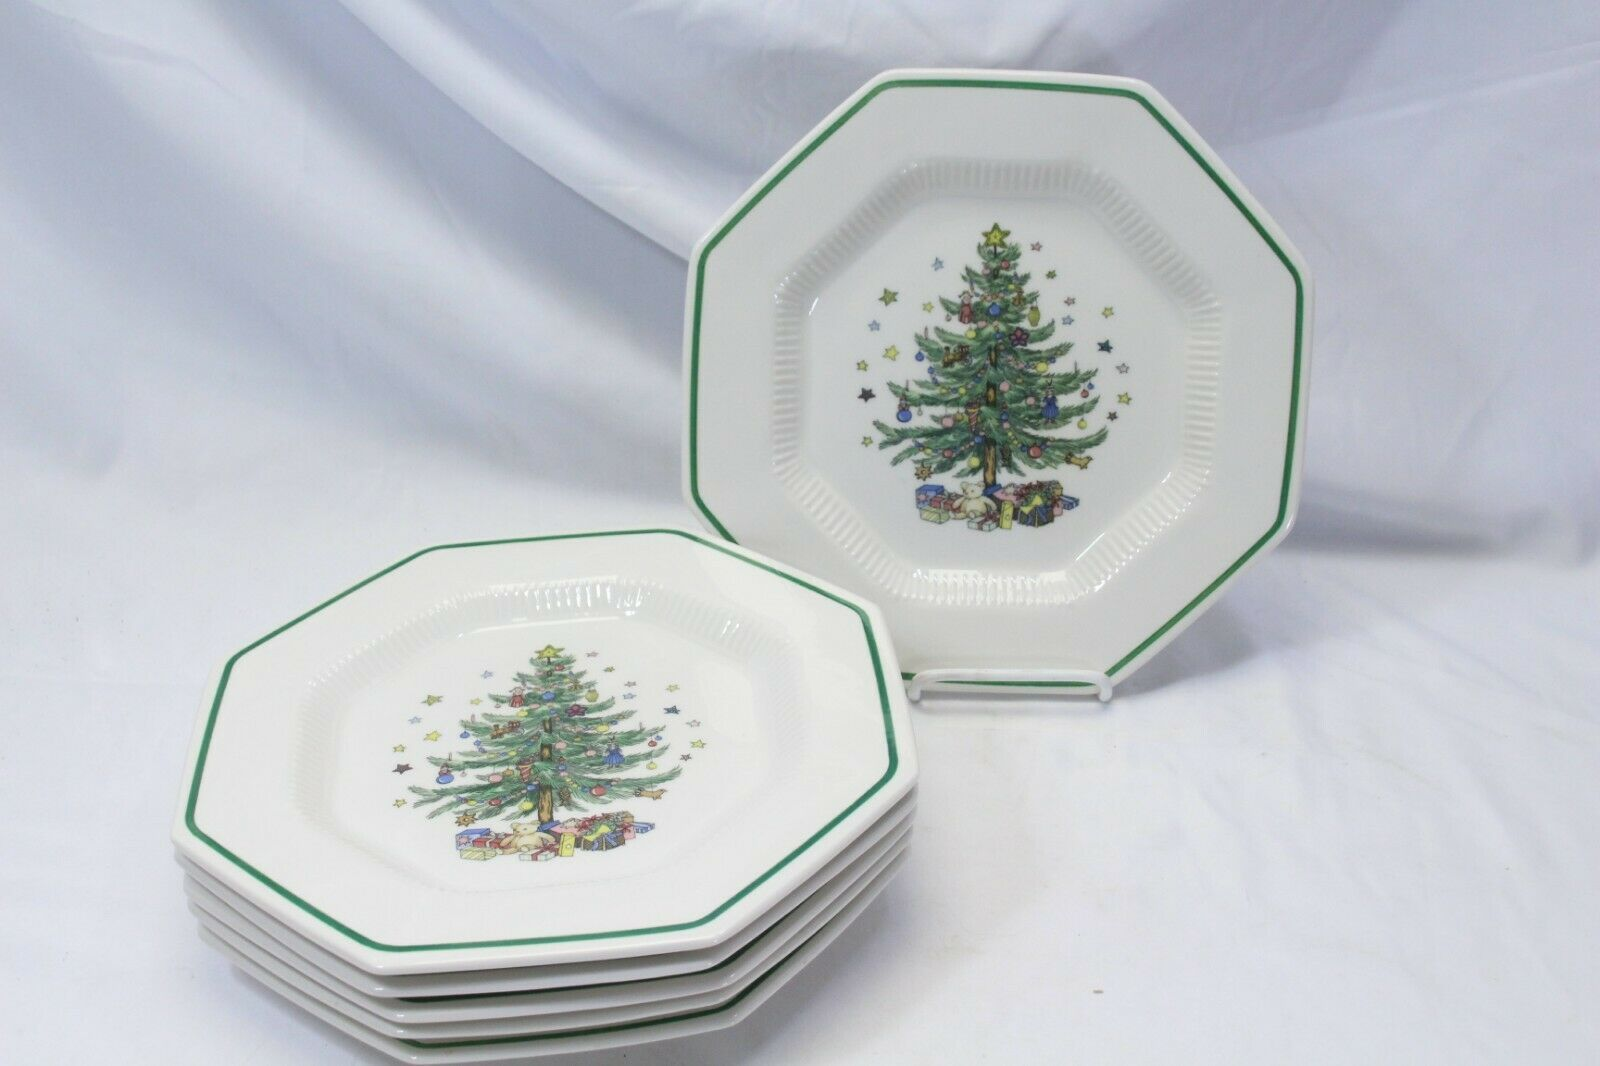 Nikko Christmastime 6 Dinner Plates 4 Salad Plates Lot of 10 image 2